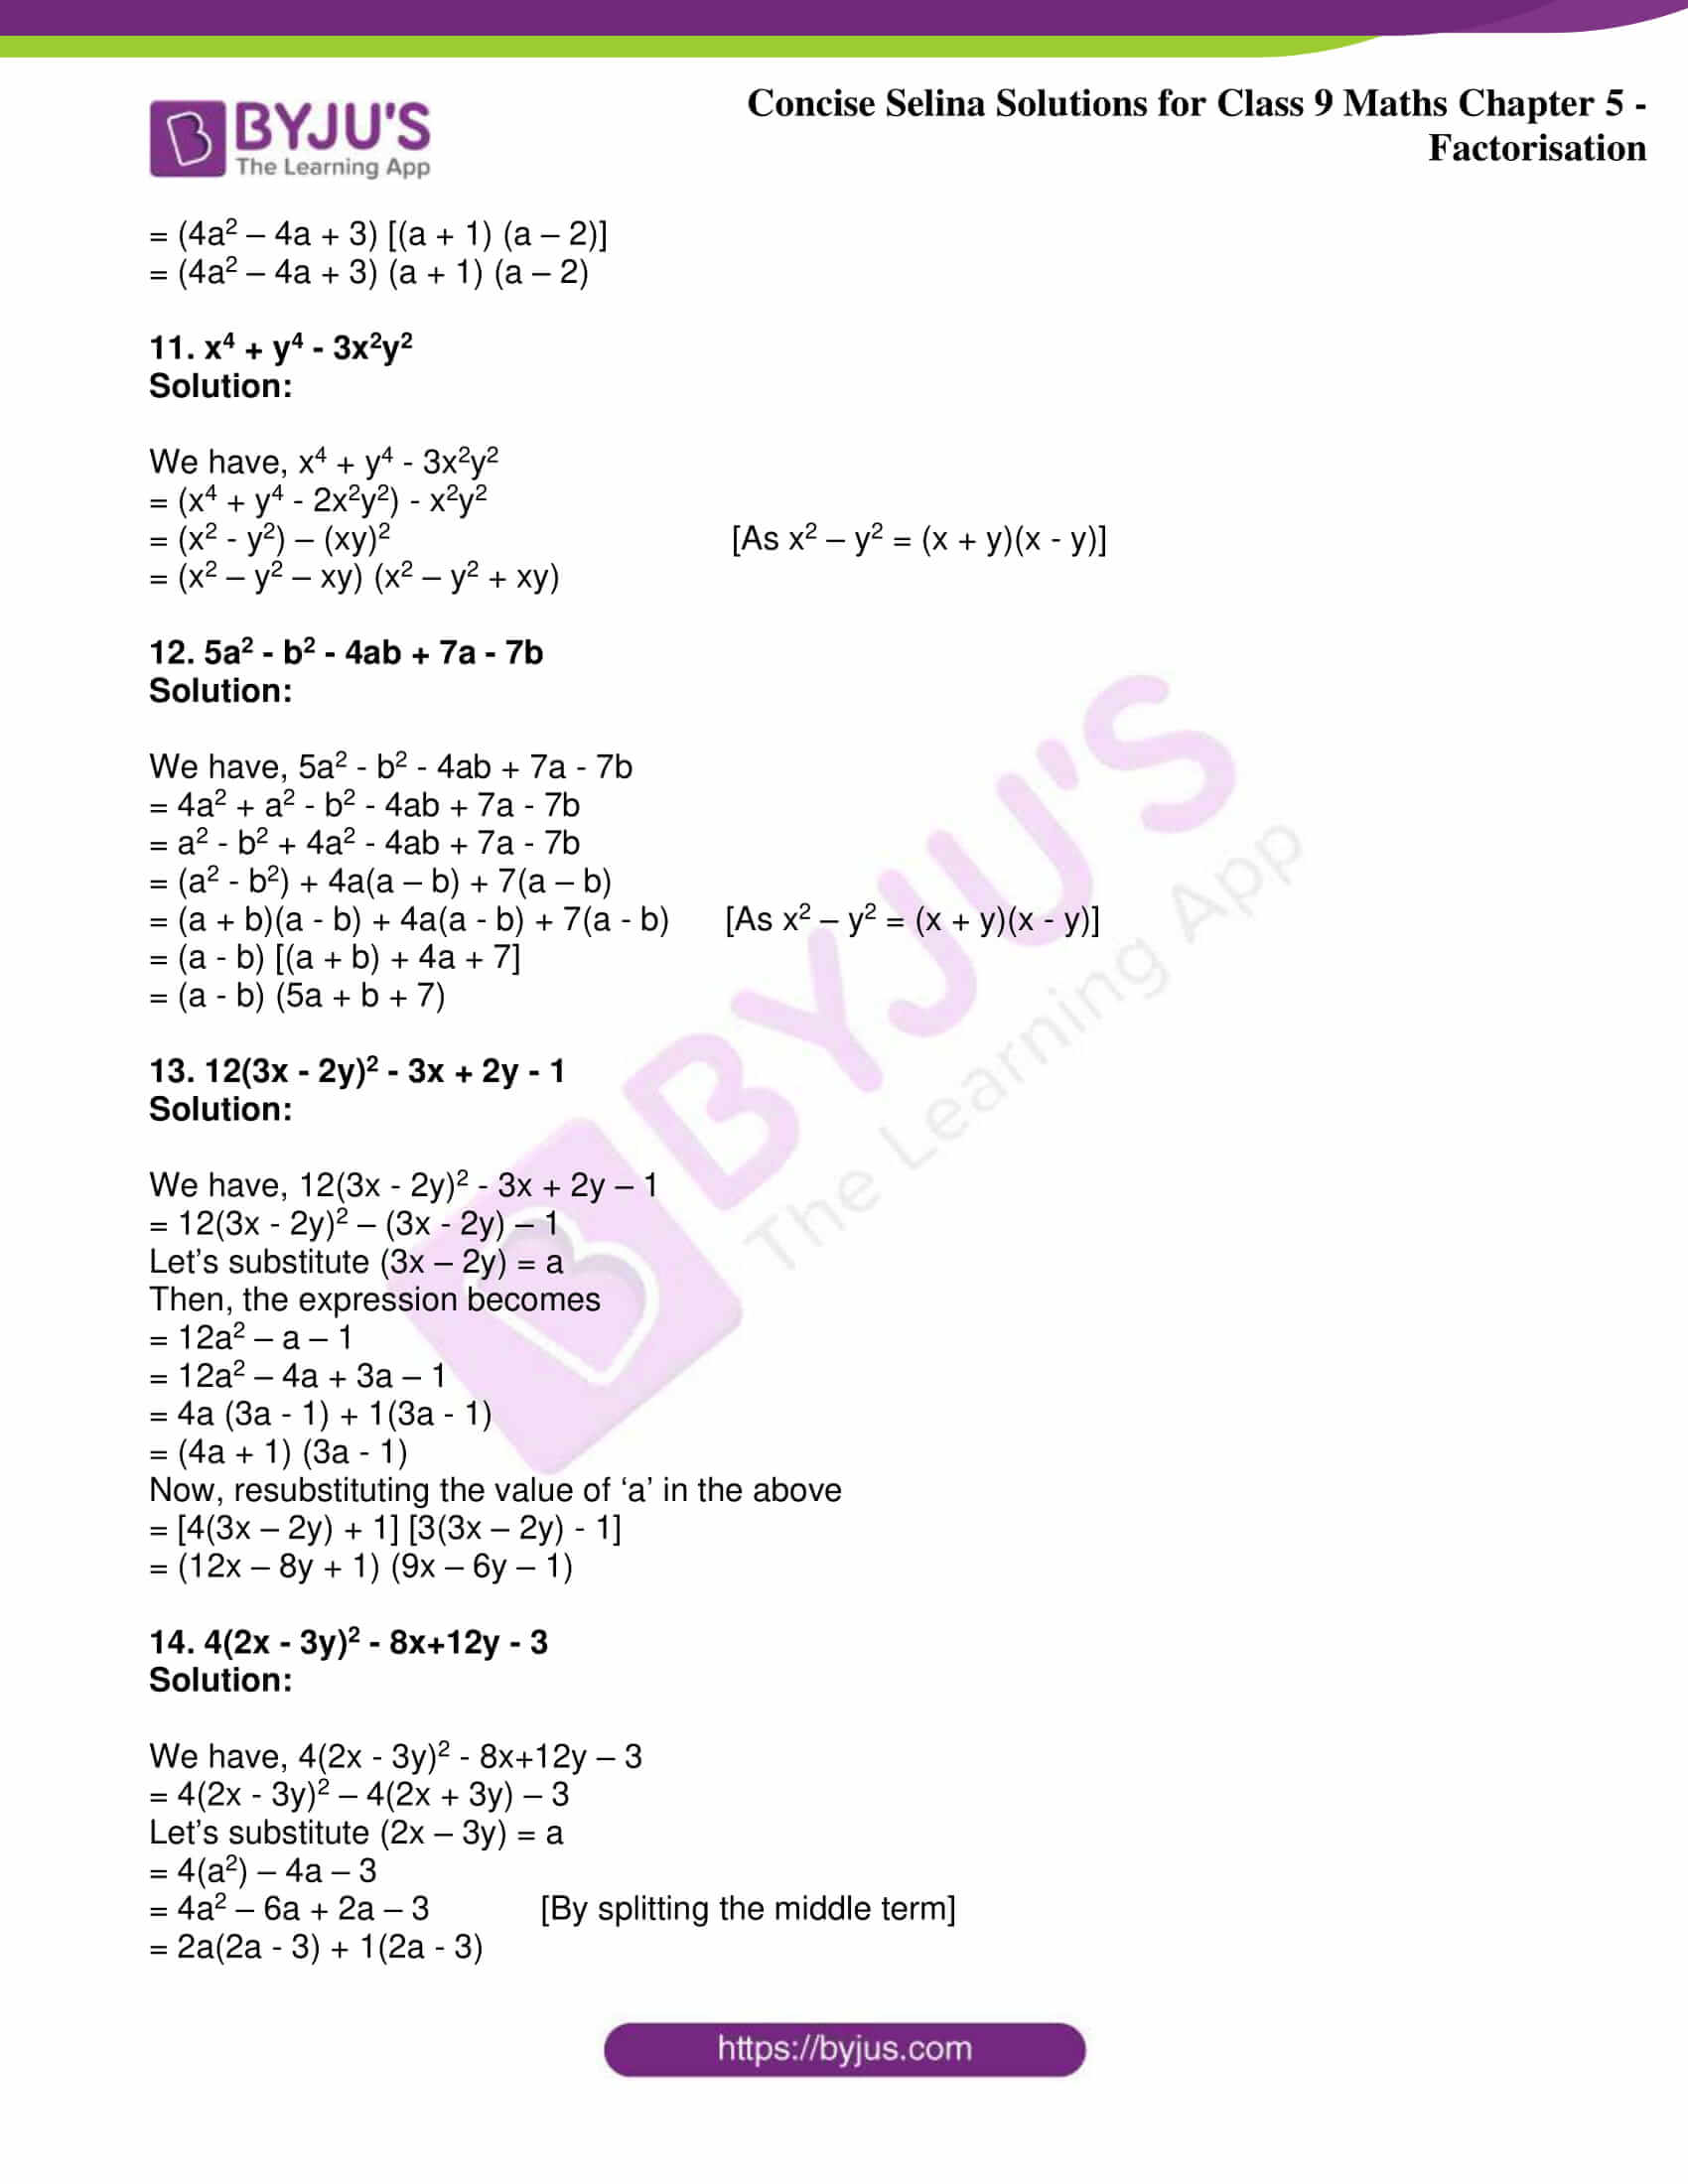 icse class 9 maths may10 selina solutions chapter 5 factorisation 28